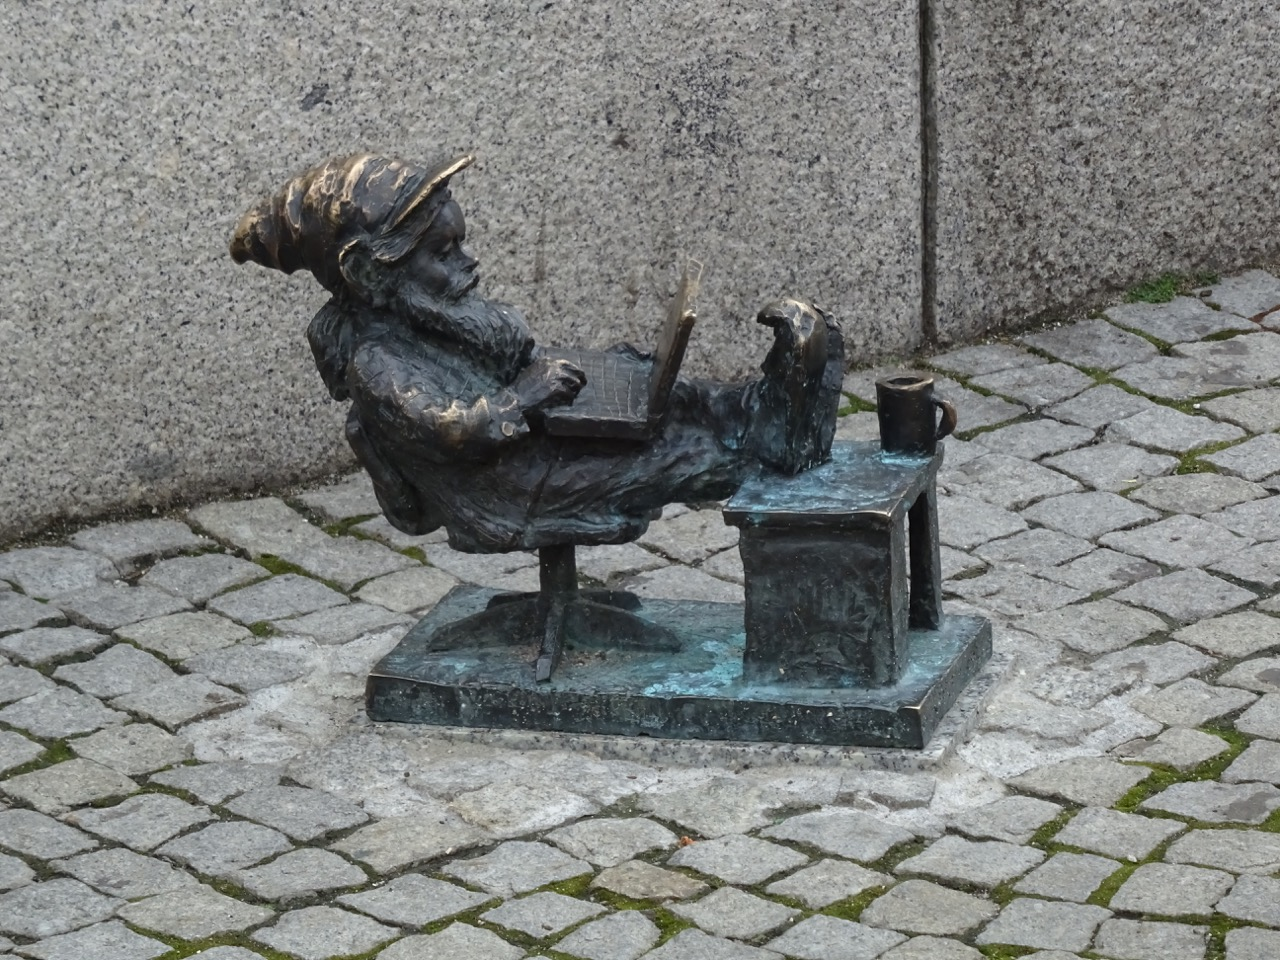 One of the 300+ gnomes in Wroclaw